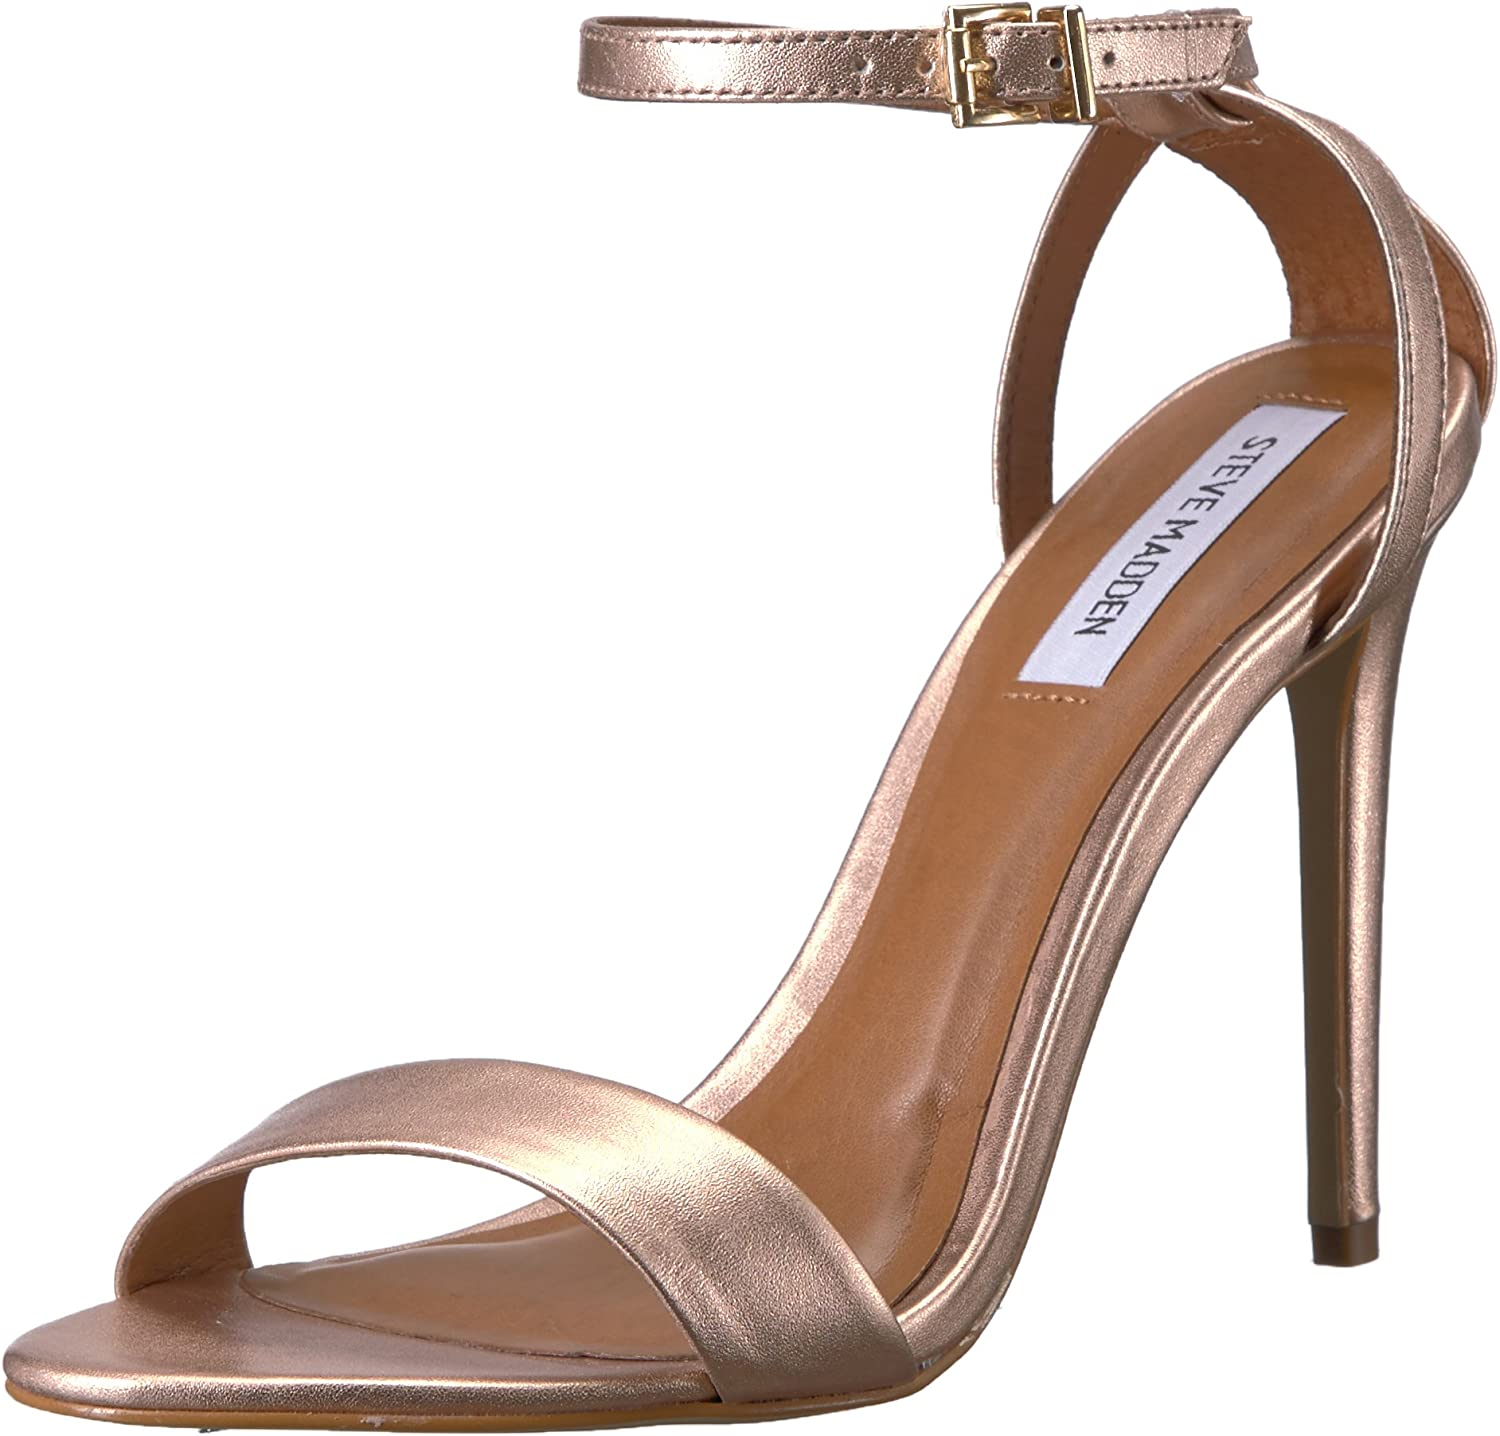 Steve Madden Womens Lacey Heeled Sandal